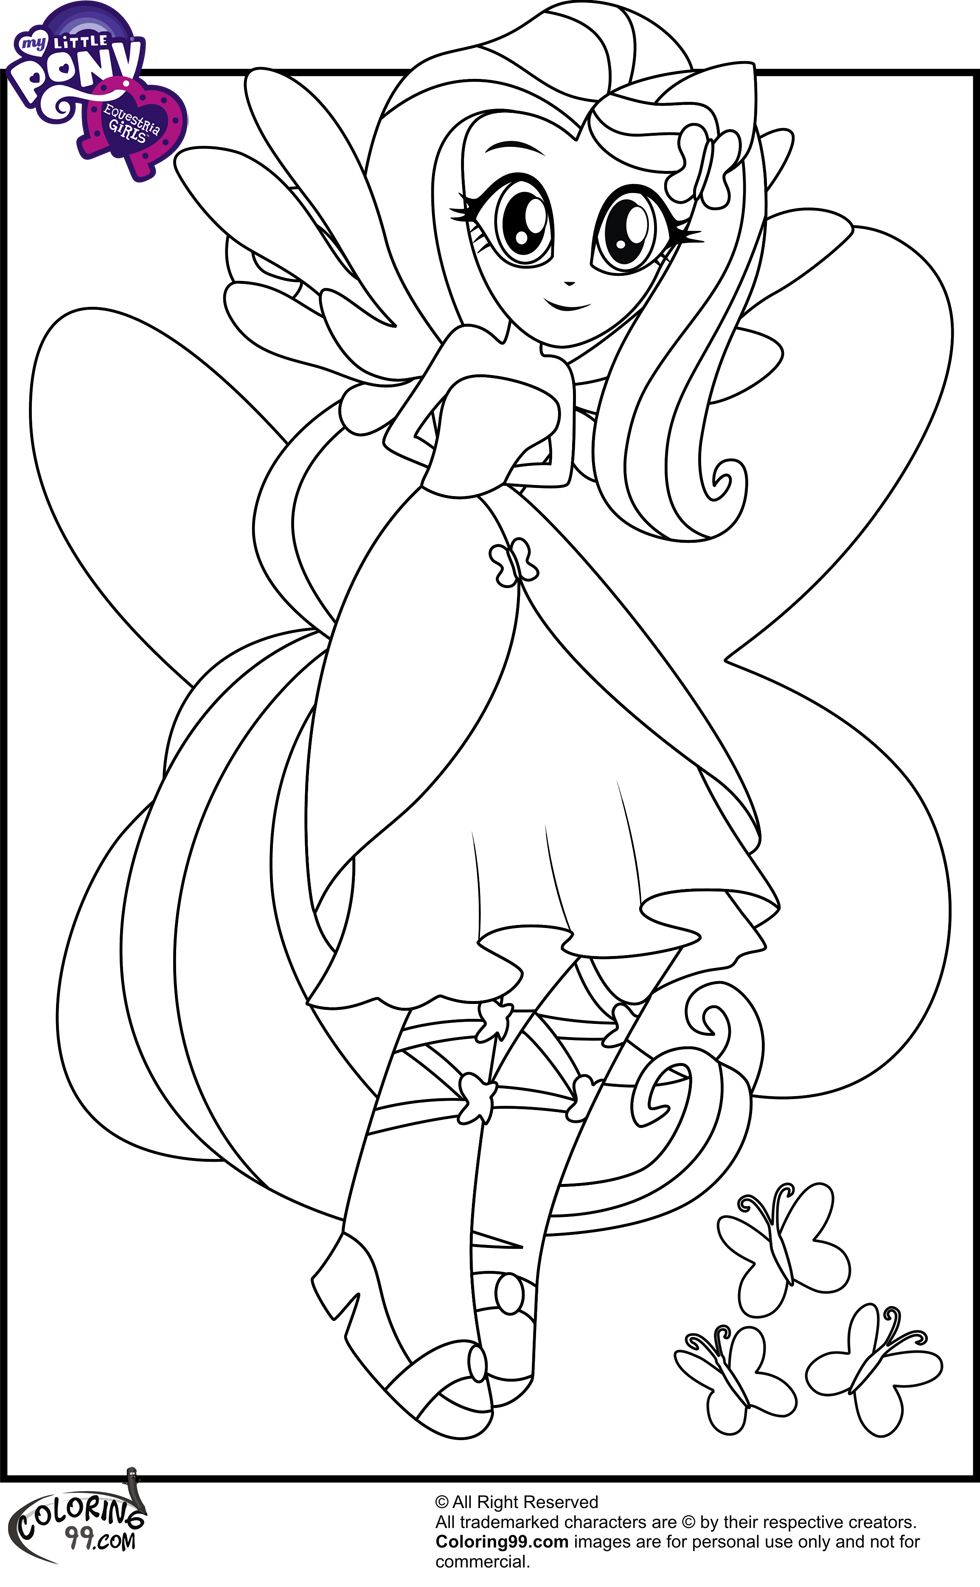 My little pony equestria girls coloring pages team colors 2  - my little pony equestria girl coloring pages to print